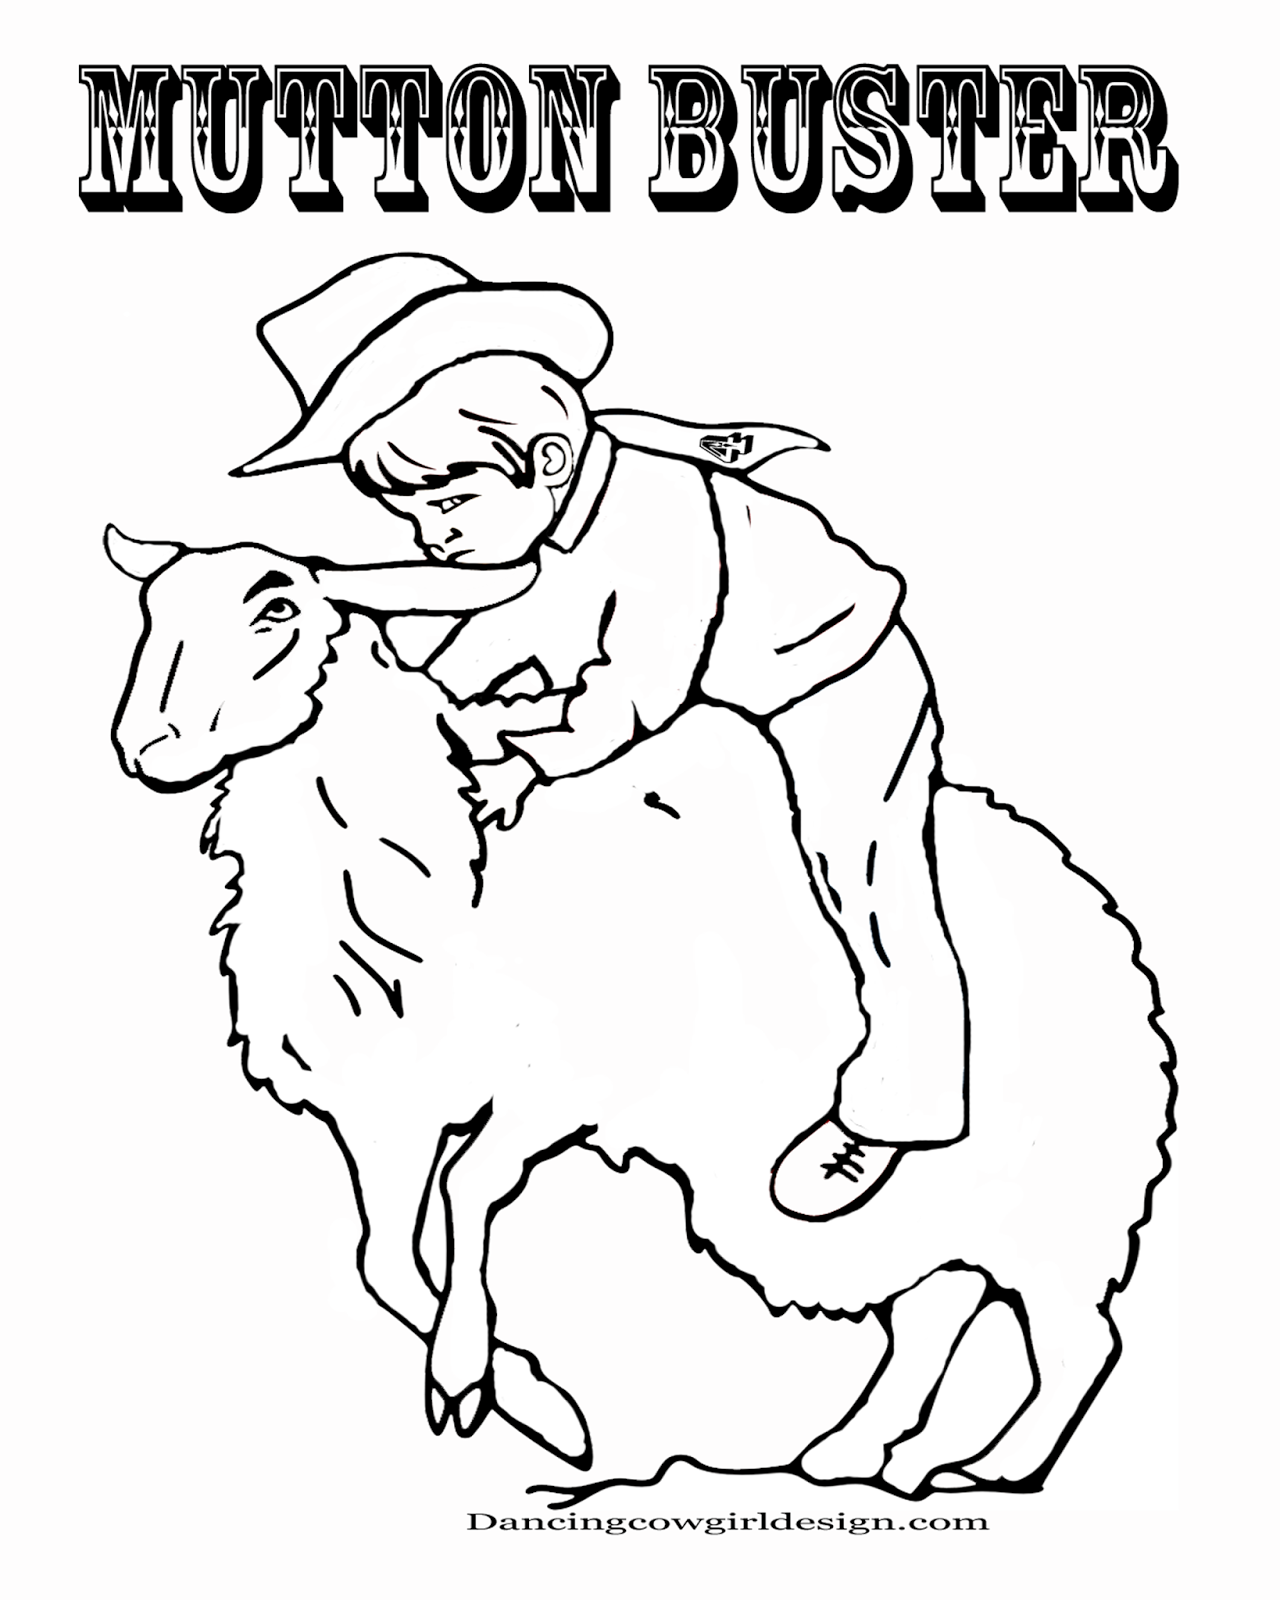 Rodeo Coloring Pages Cowboy Coloring Sheet Kid Mutton Bustin